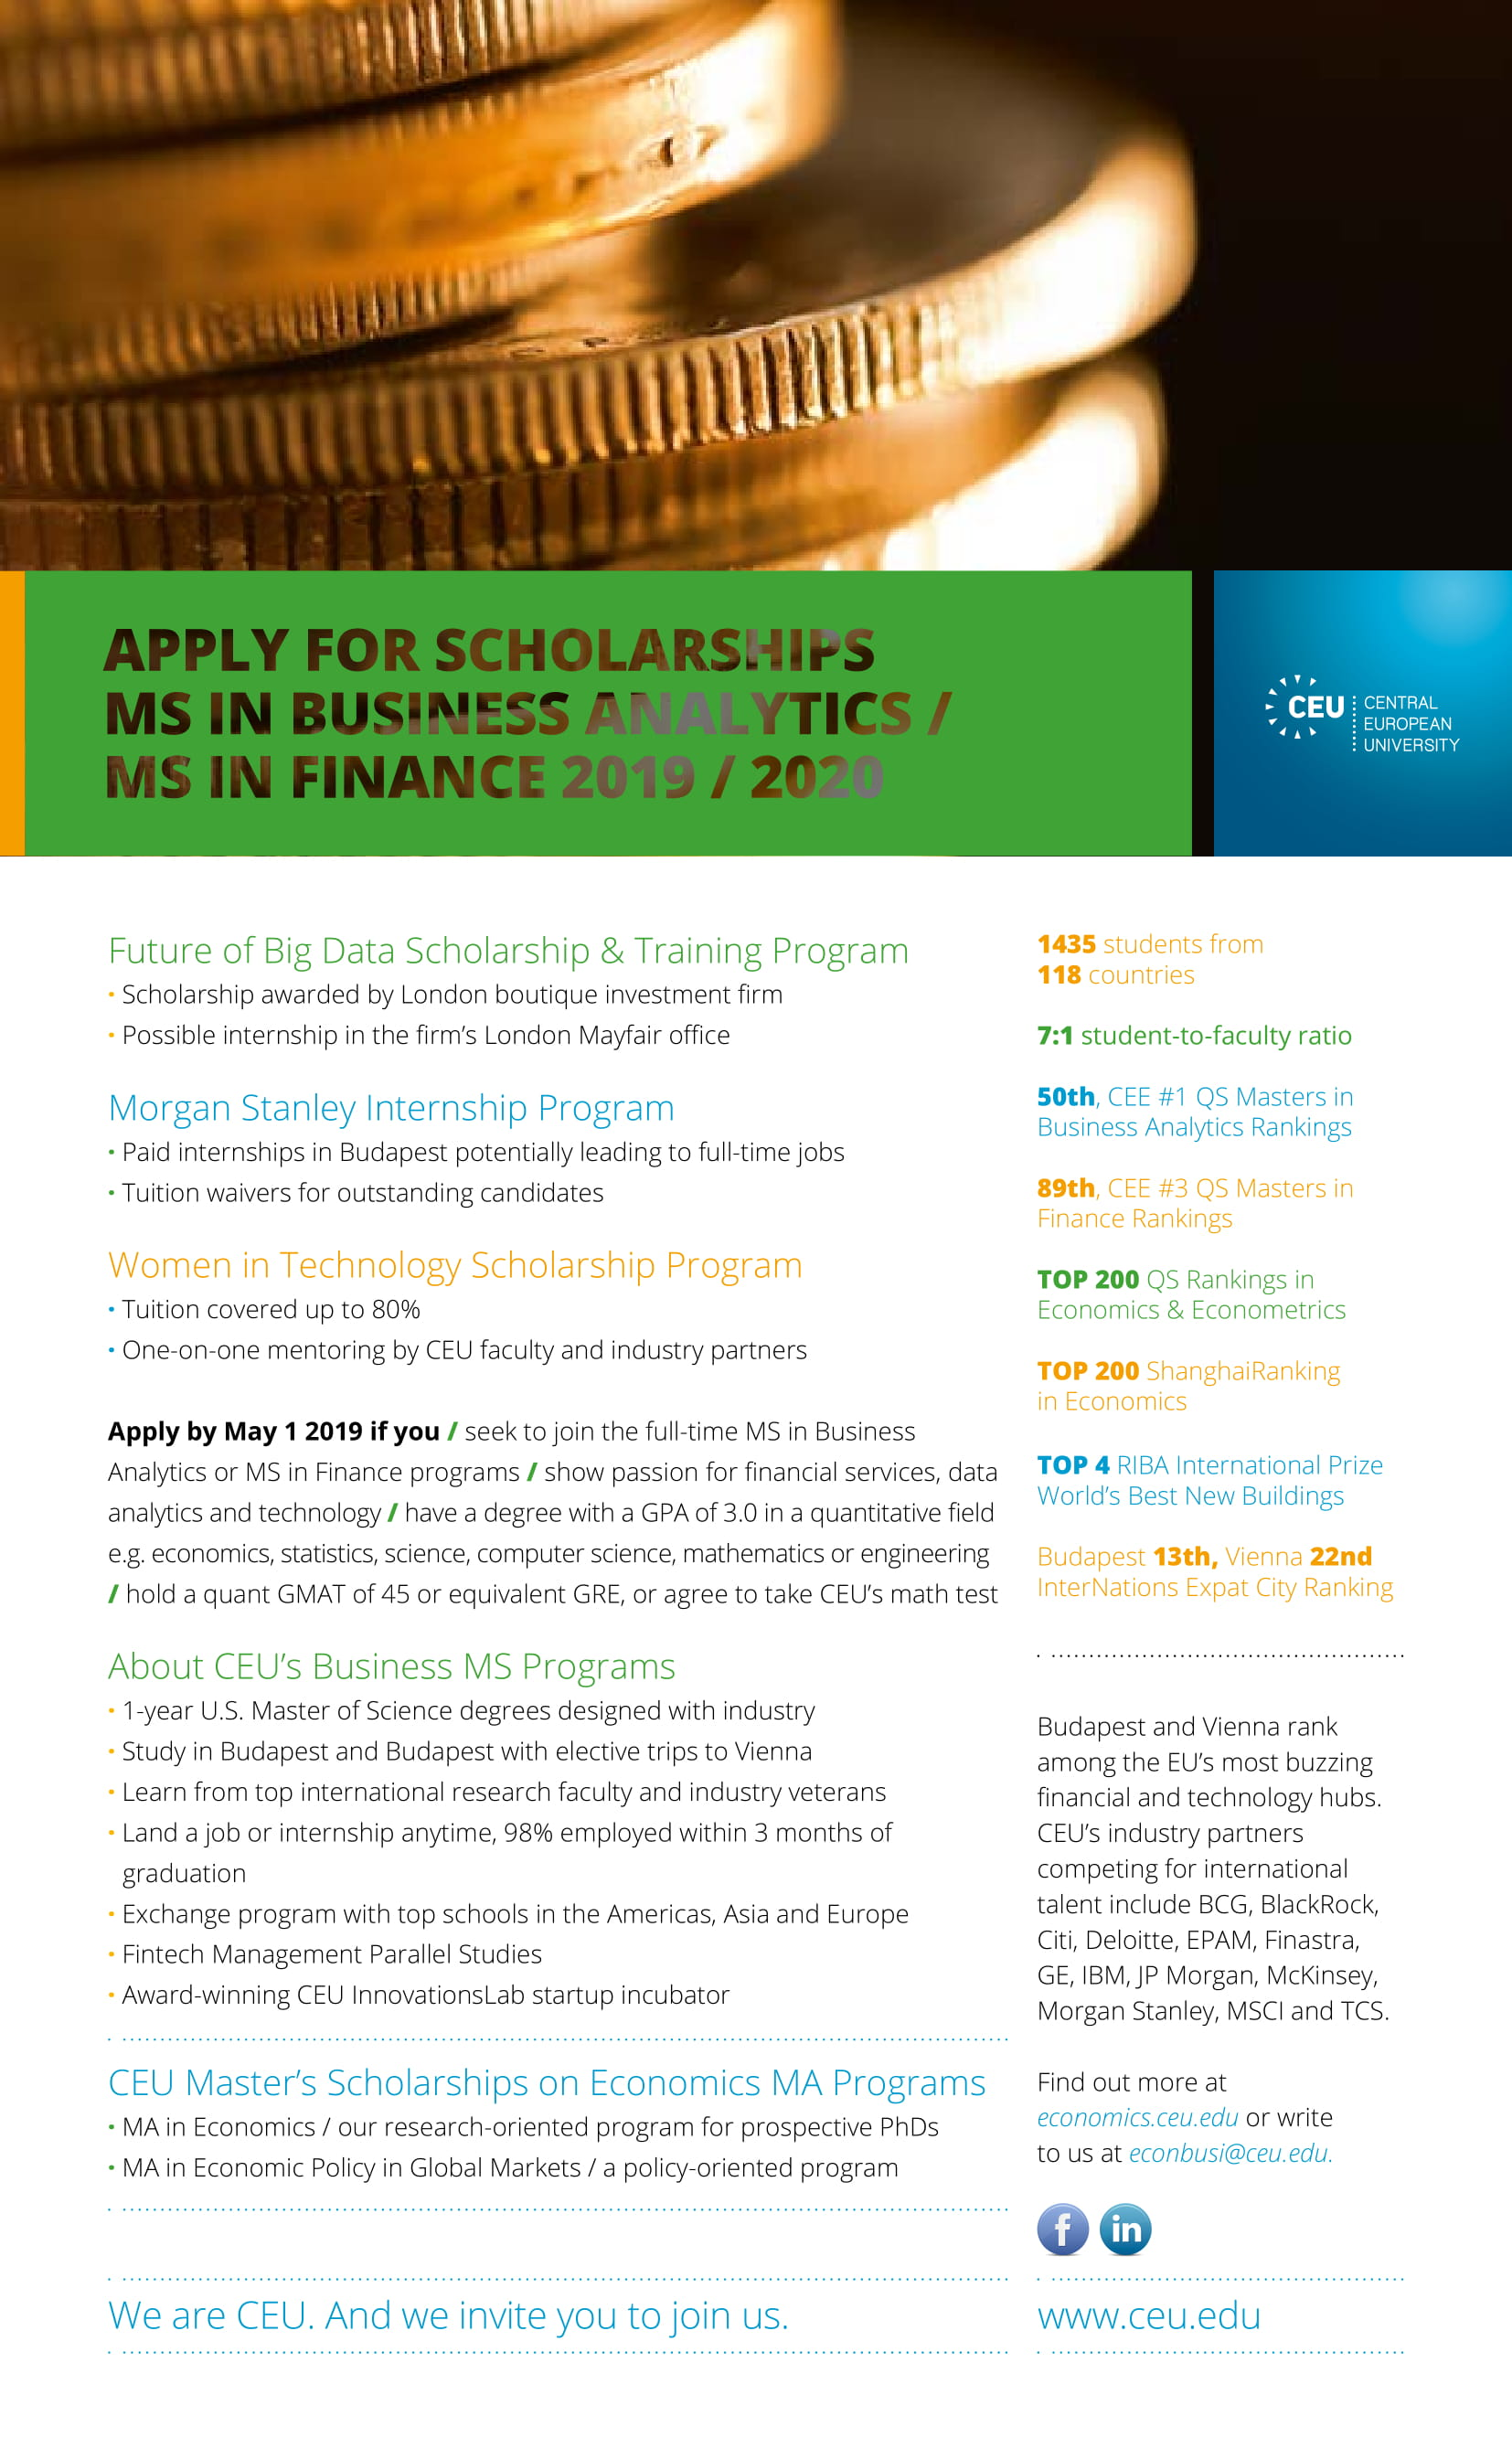 CEU MS in Business Analytics and MS in Finance Scholarship